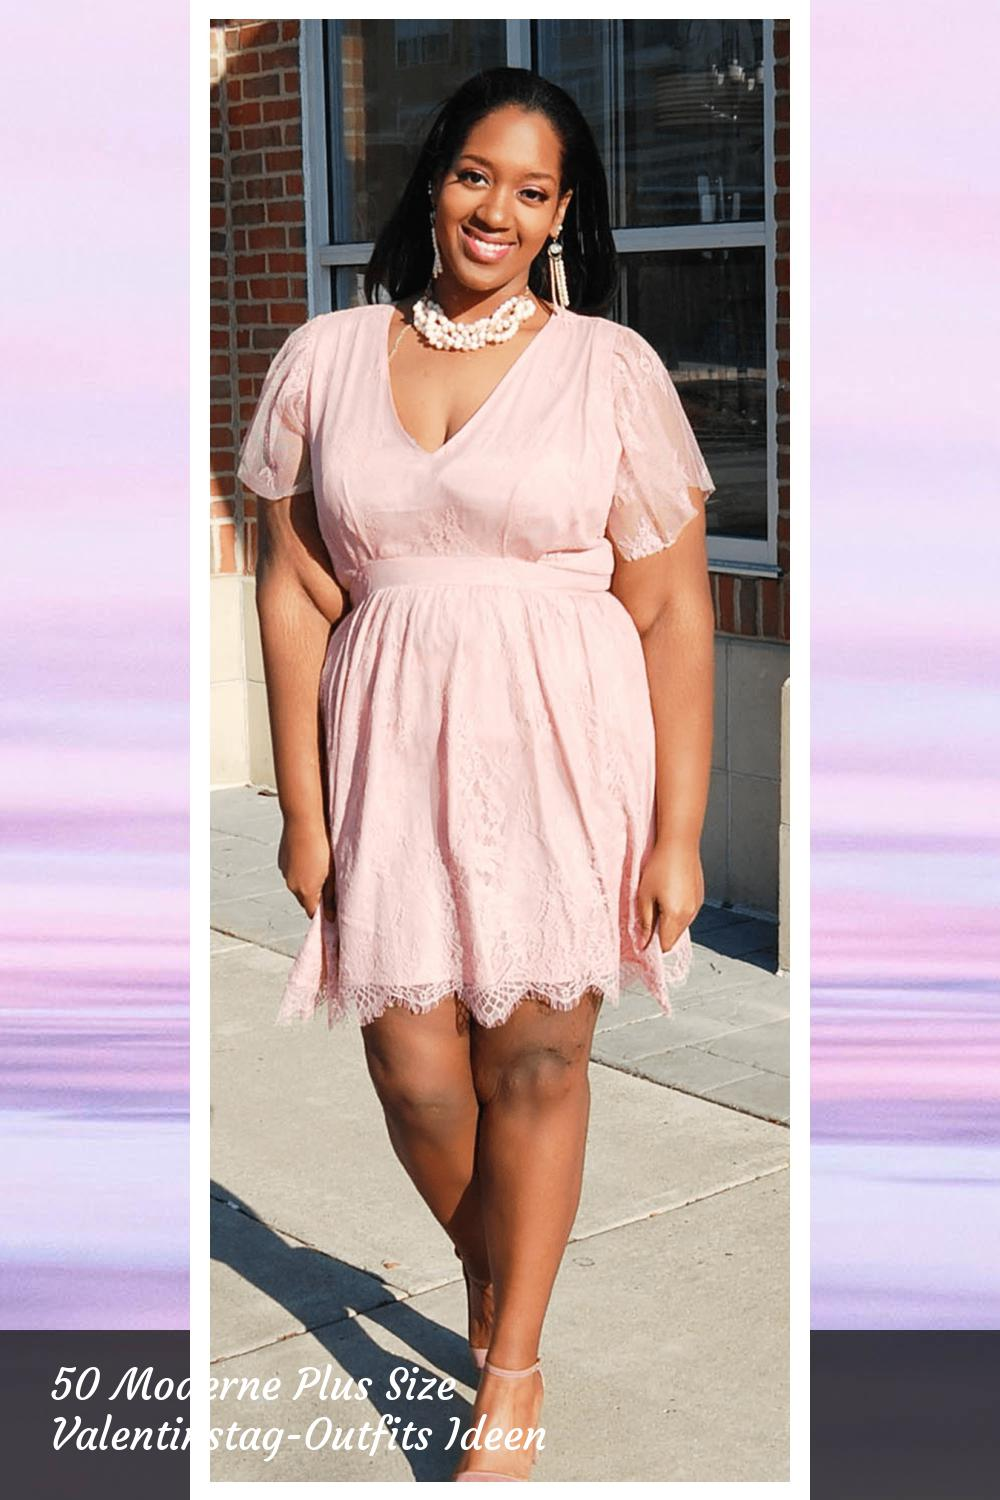 50 Moderne Plus Size Valentinstag-Outfits Ideen 7